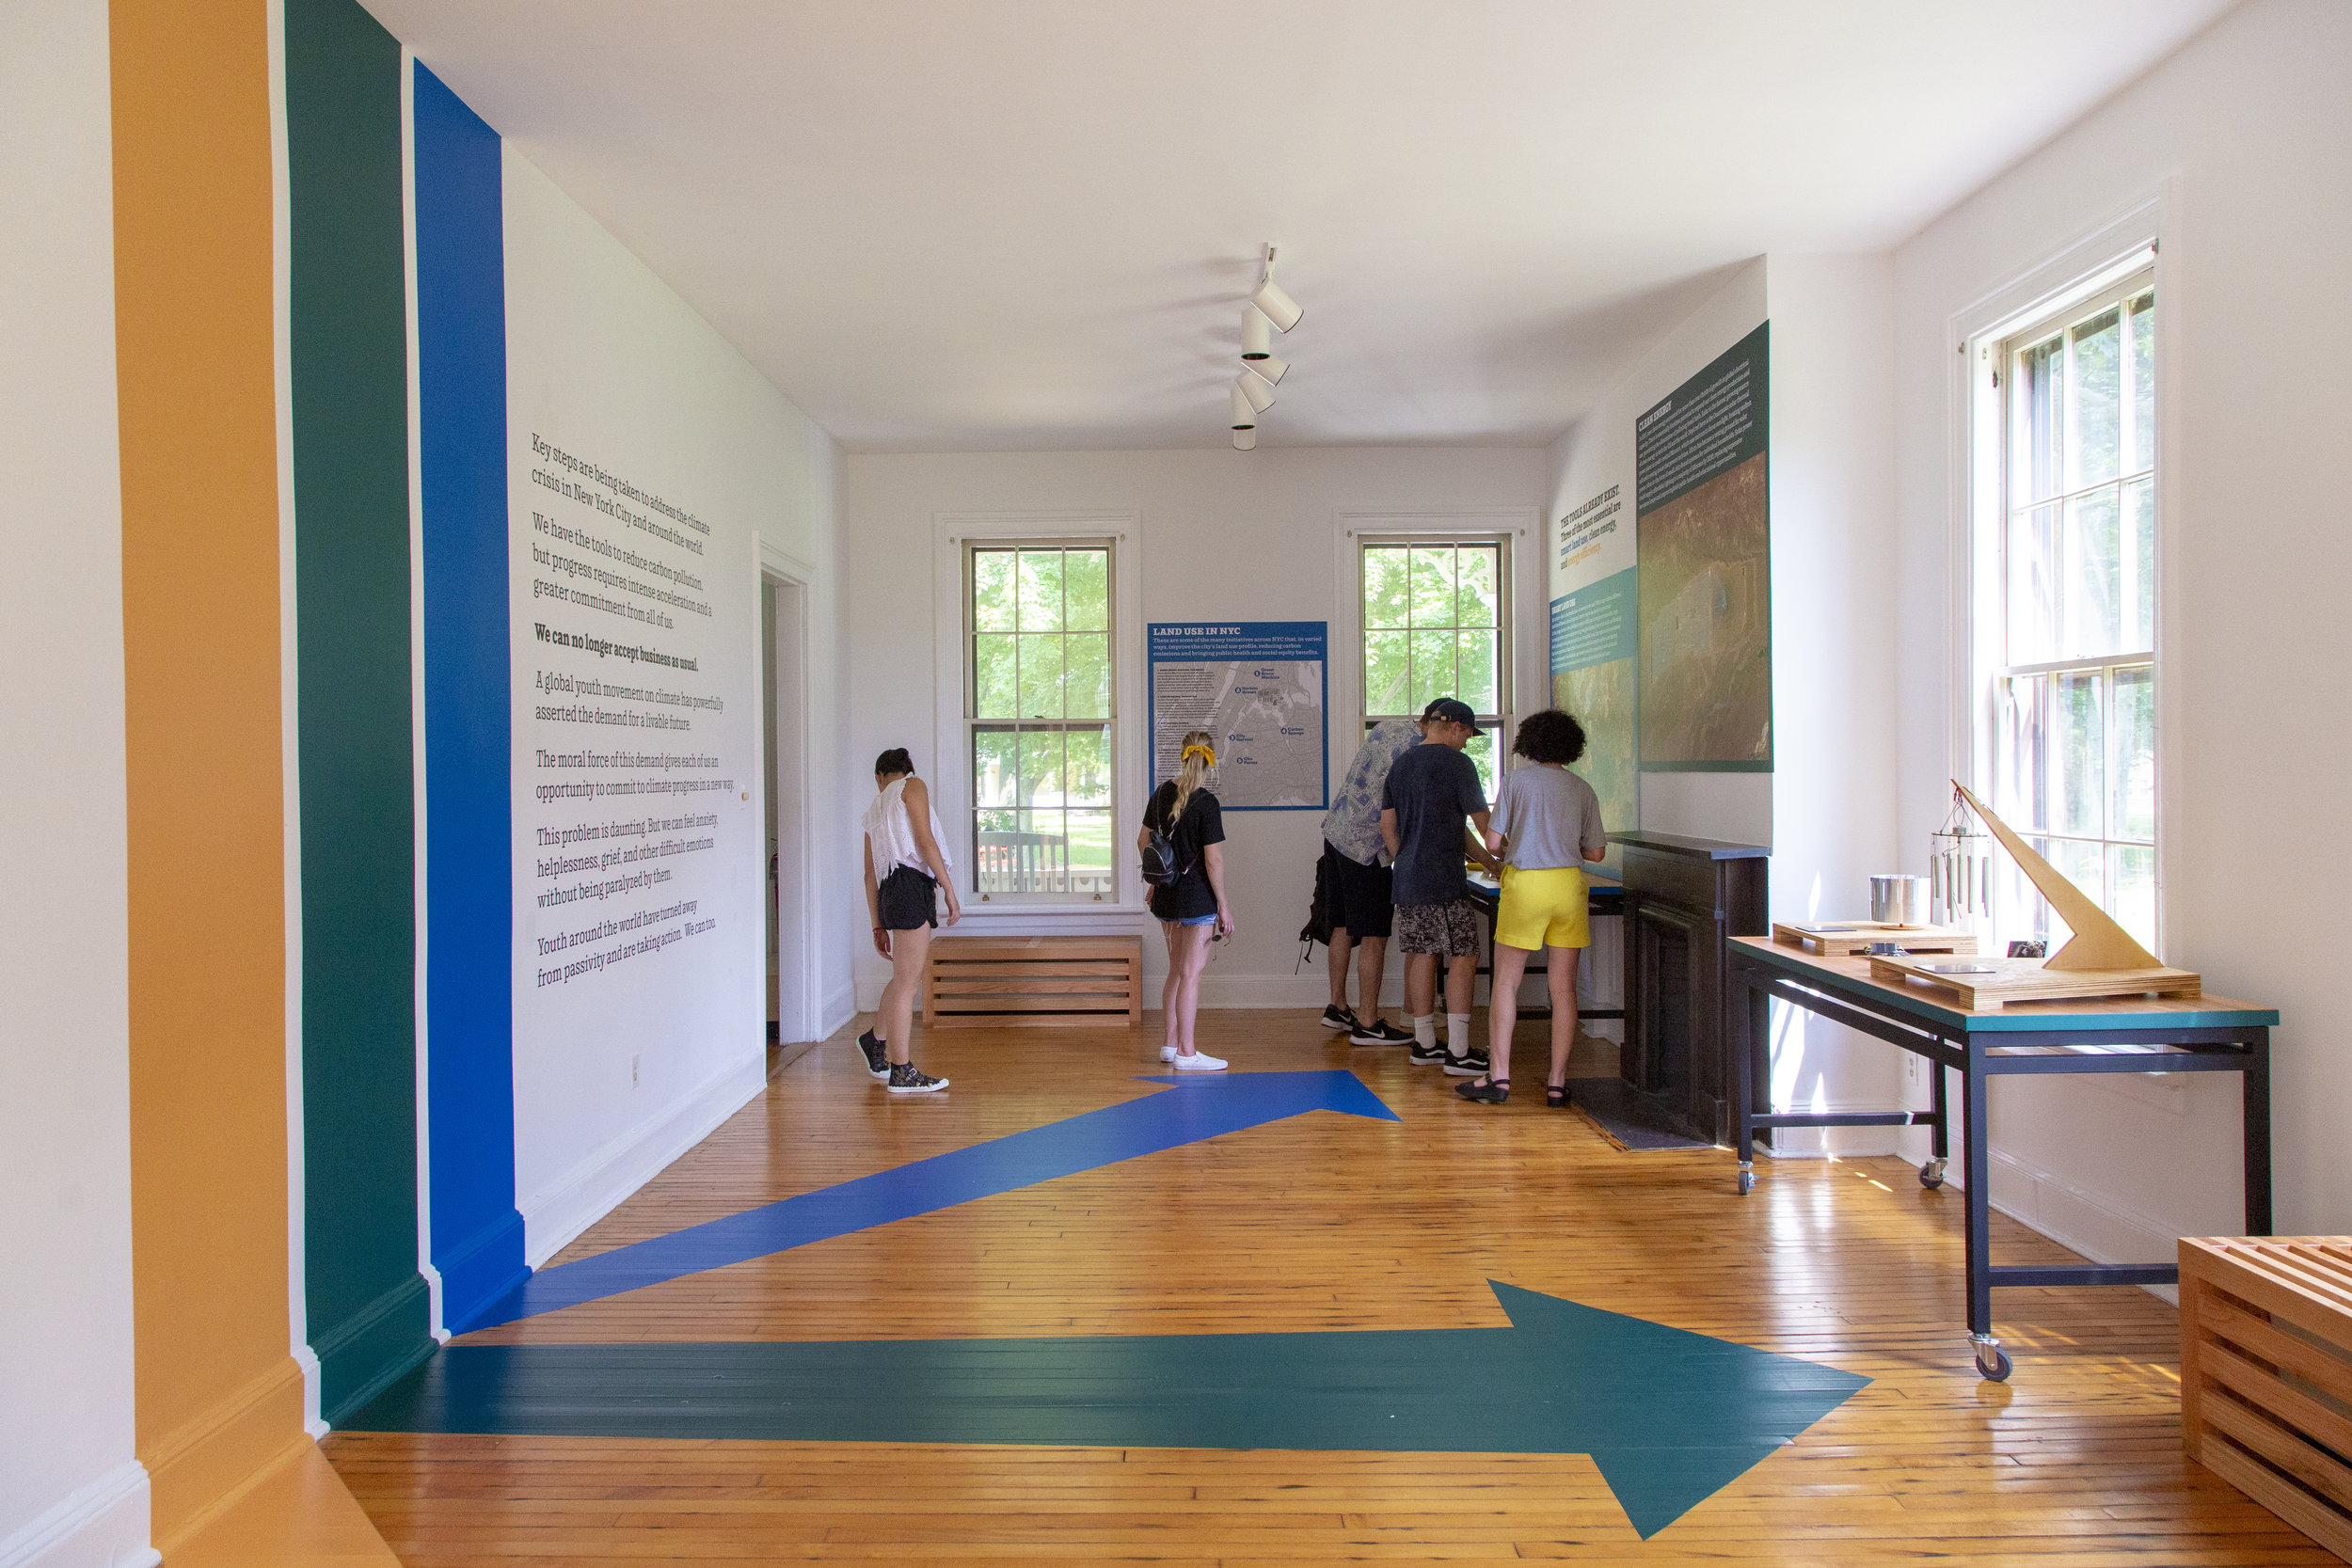 Exhibition interior